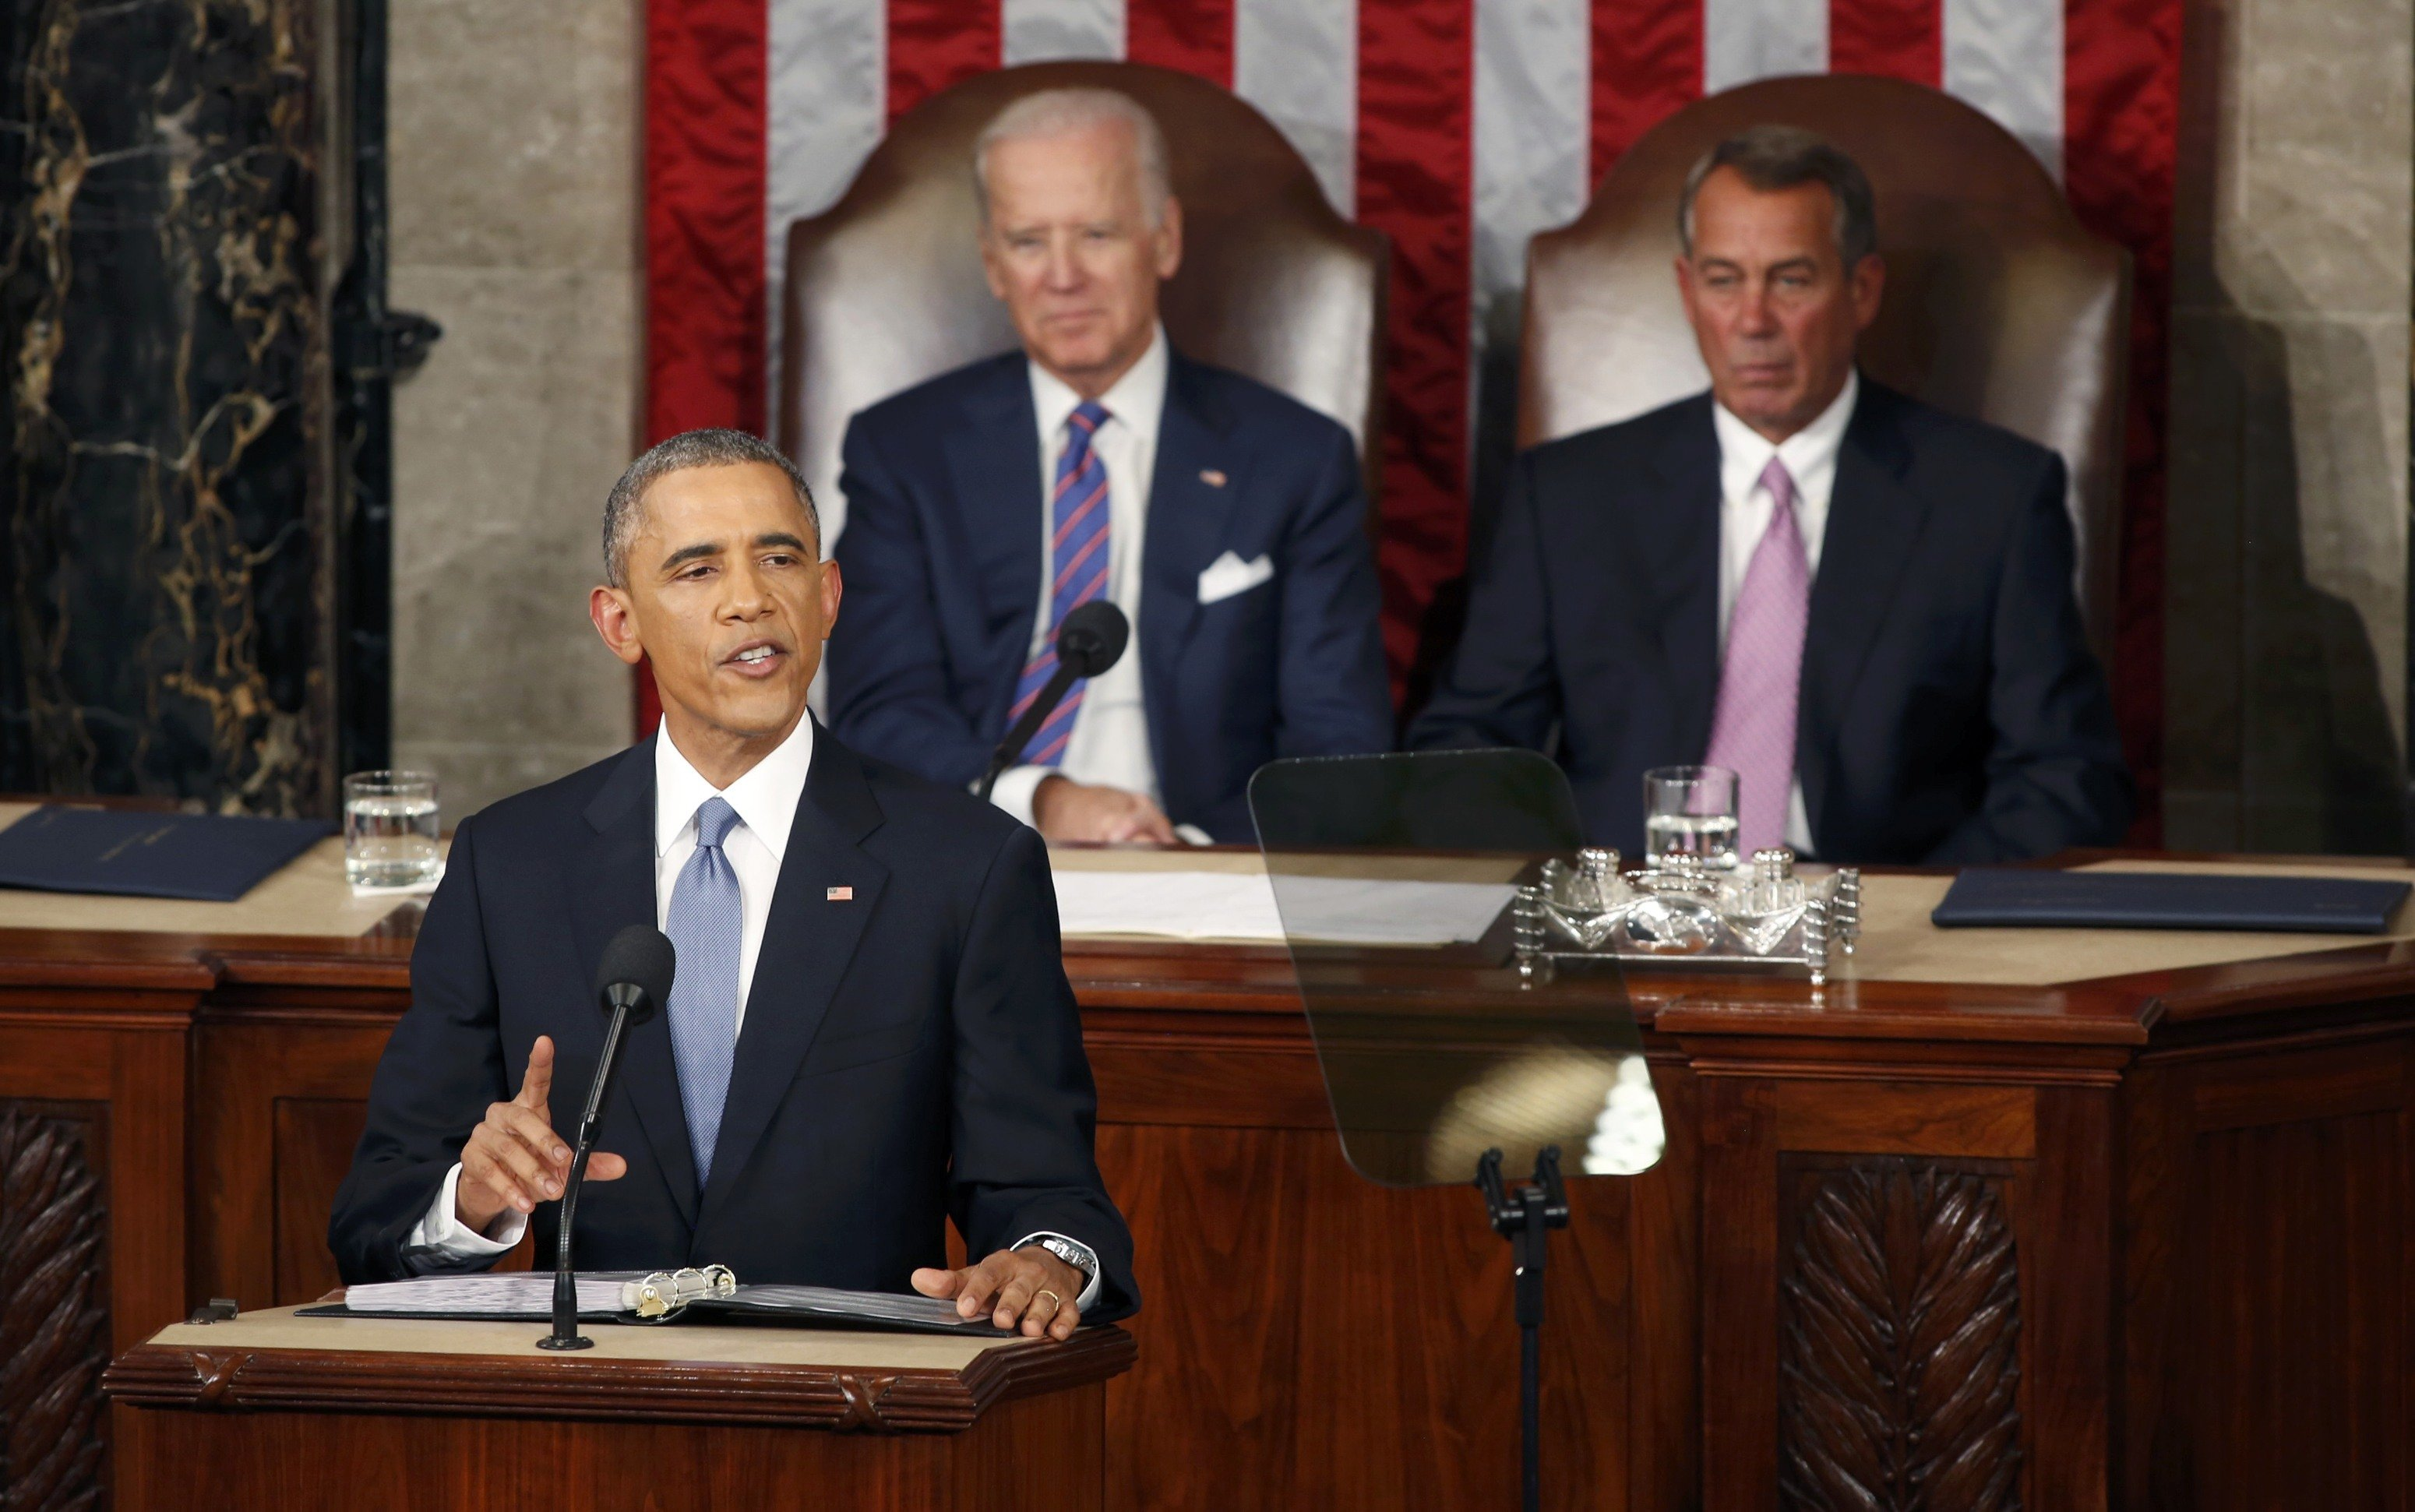 President Barack Obama delivers his State of the Union address to a joint session of the U.S. Congress on Capitol Hill in Washington on Jan. 20, 2015.